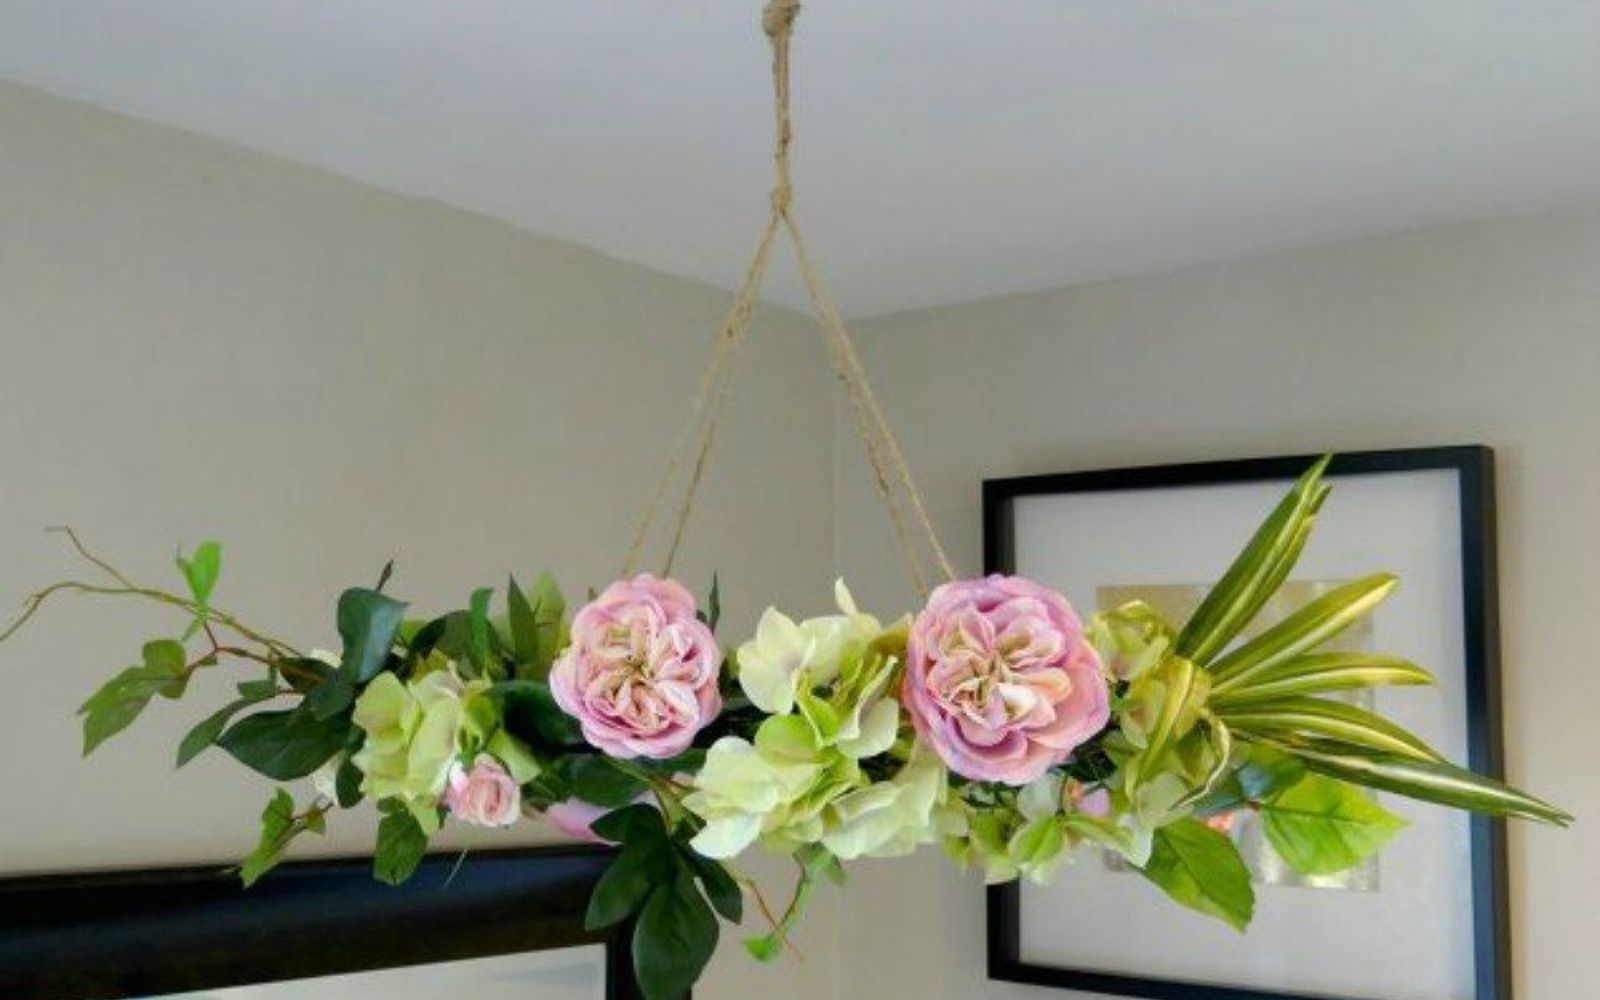 s why everyone is buying artificial flowers for the holidays, gardening, They make a beautiful chandelier